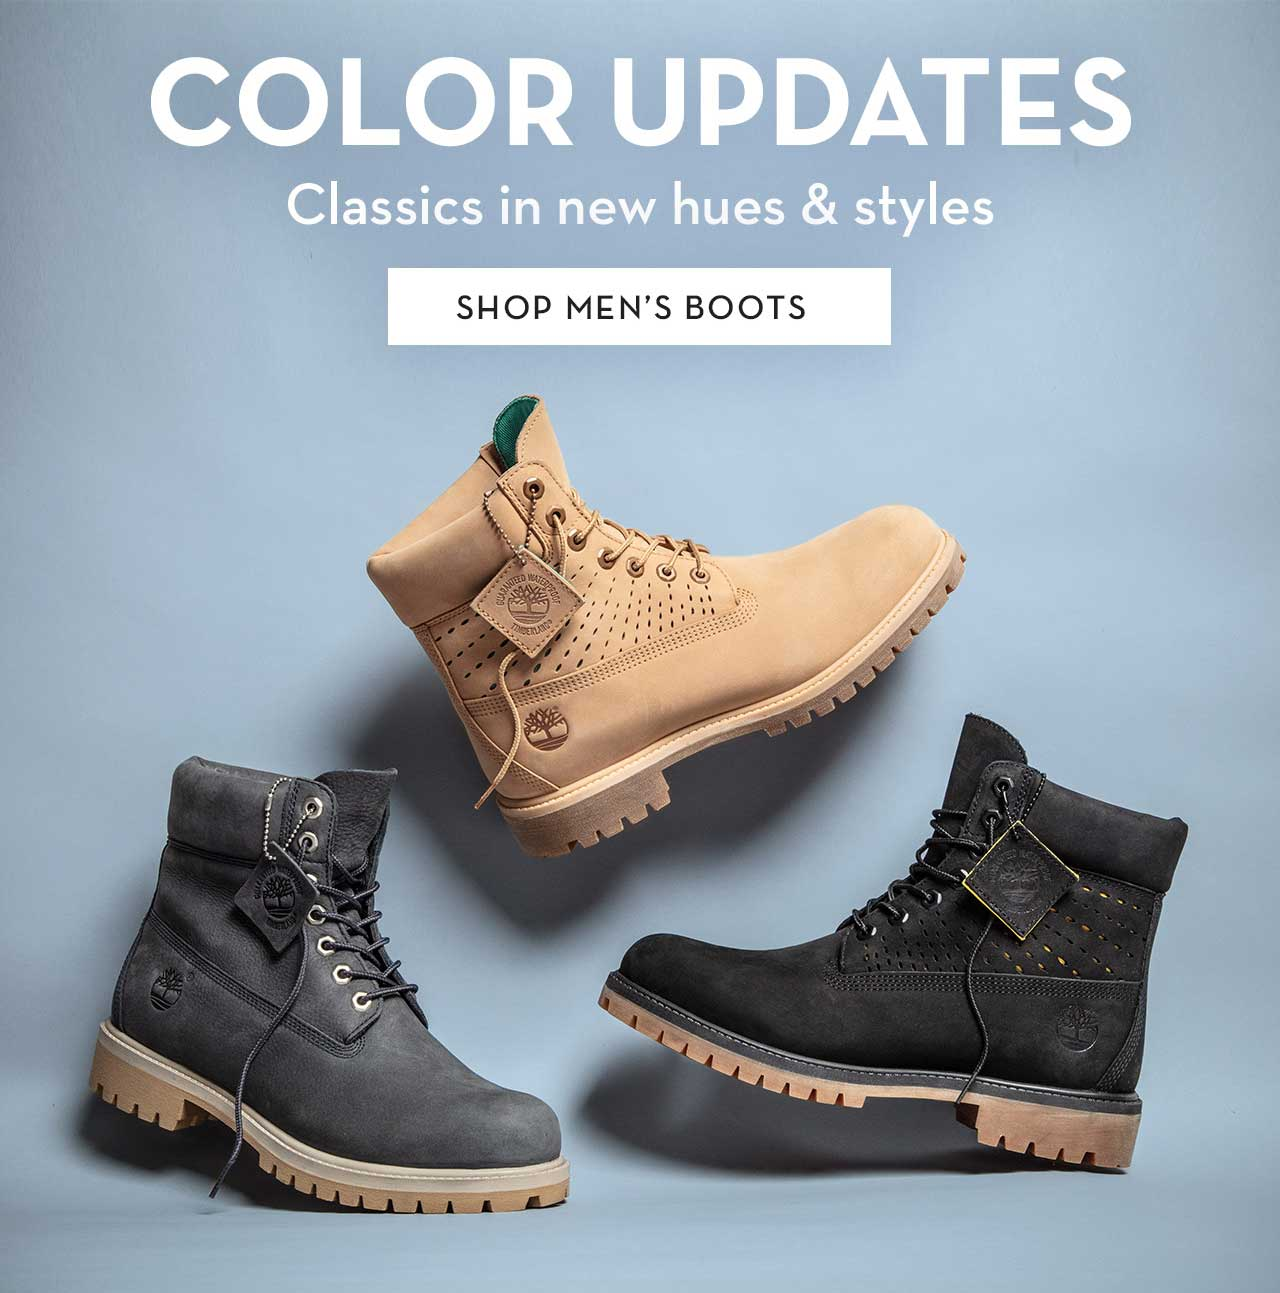 Color Updates Classics in new hues & styles Shop Men's Boots